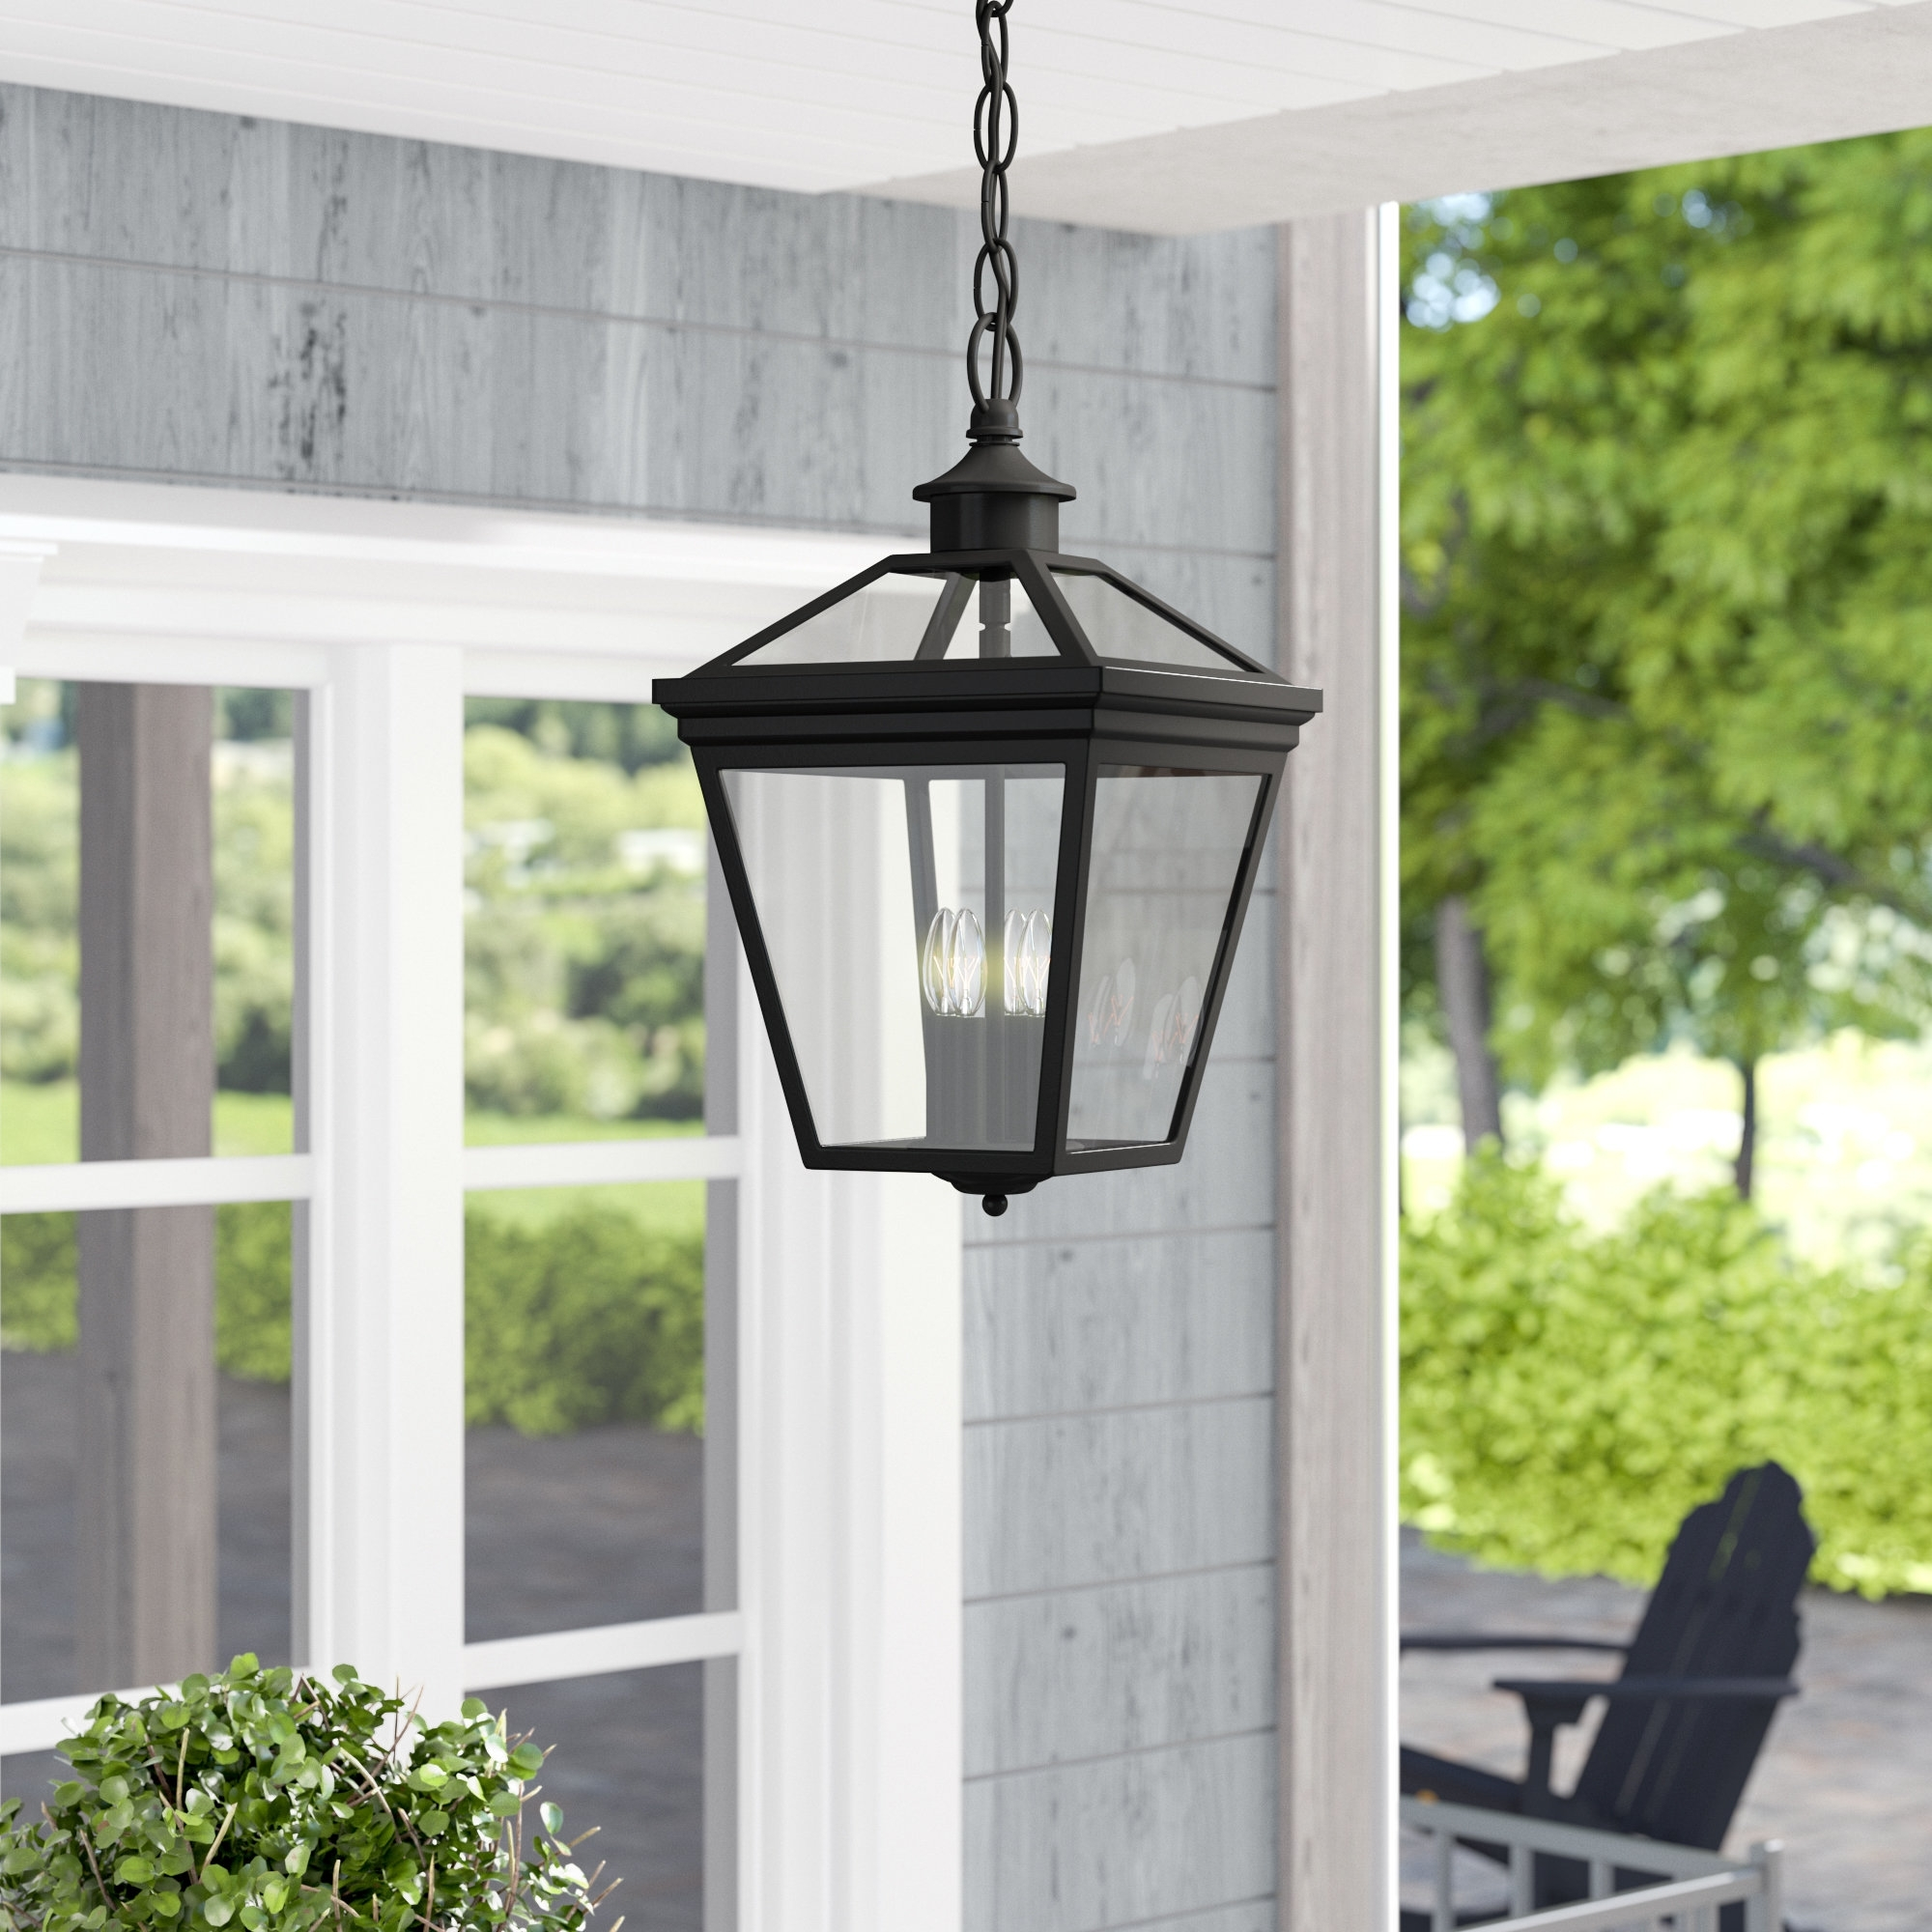 Wayfair Within Most Recently Released Outdoor Vinyl Lanterns (View 20 of 20)